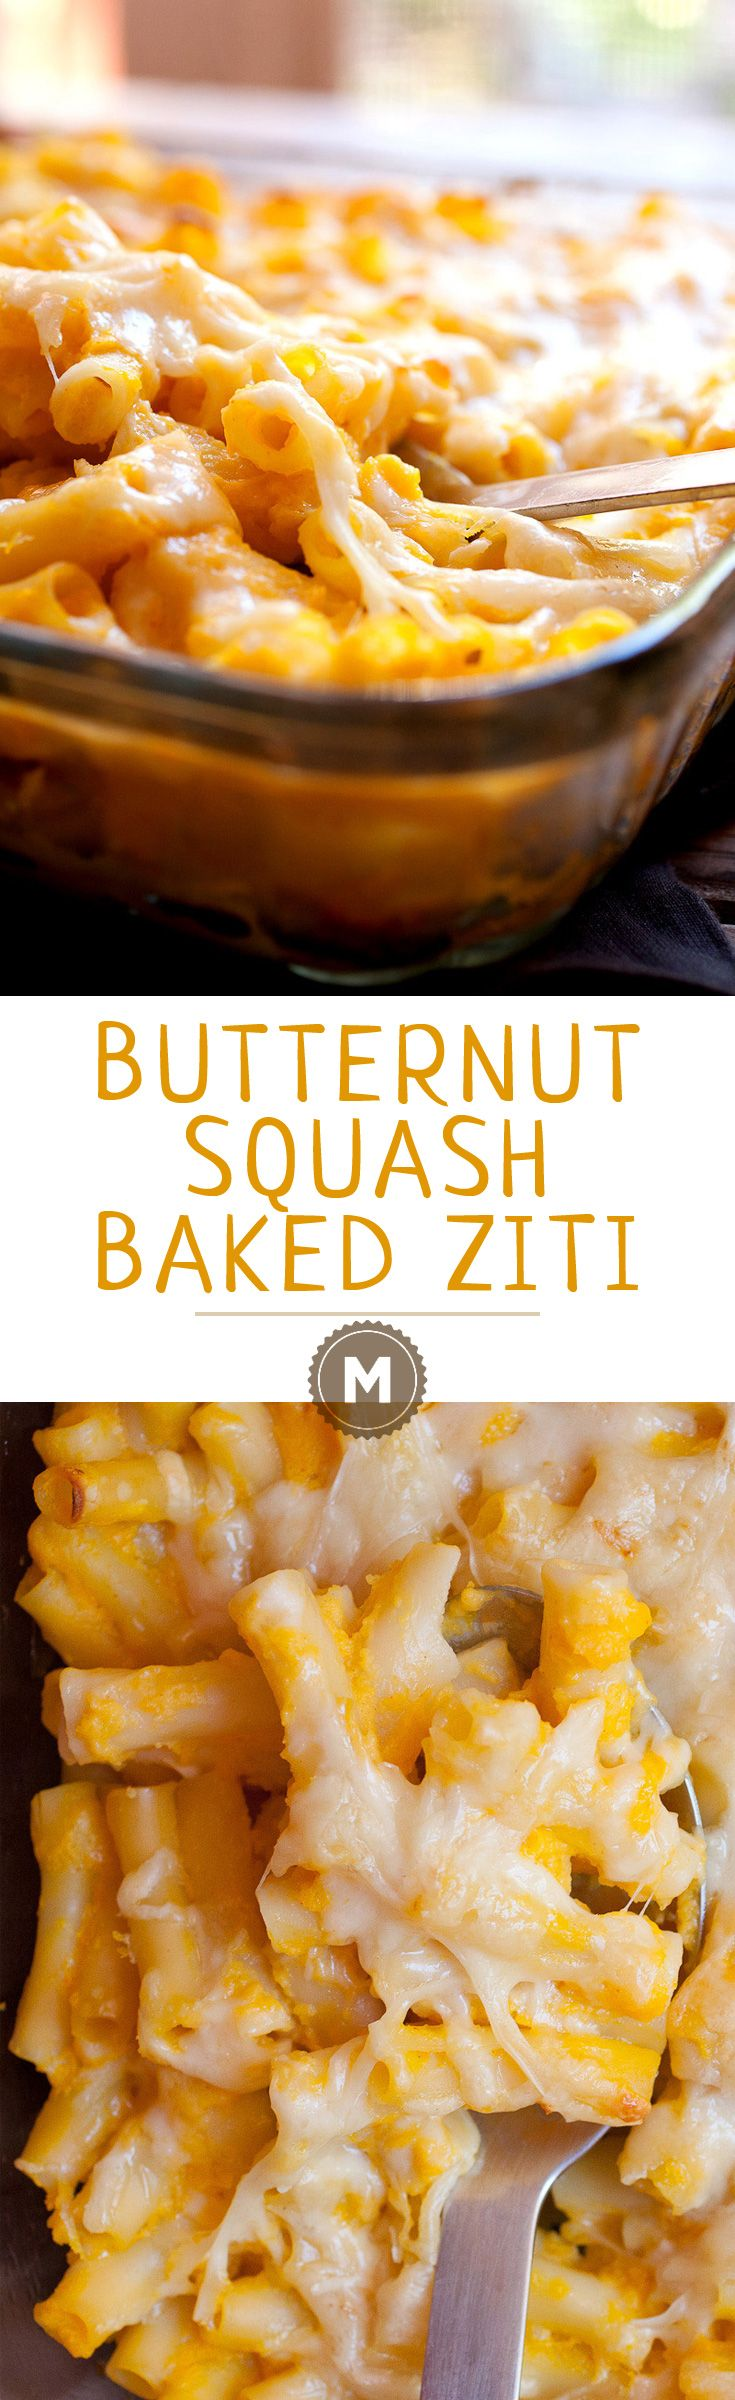 Butternut Squash Baked Ziti: This is such a great fall twist on classic baked ziti. Butternut Squash, Gruyere cheese, and a few spices to tie it all together. Easy to make and will feed a crowd! Baked ziti is the BEST!   macheesmo.com